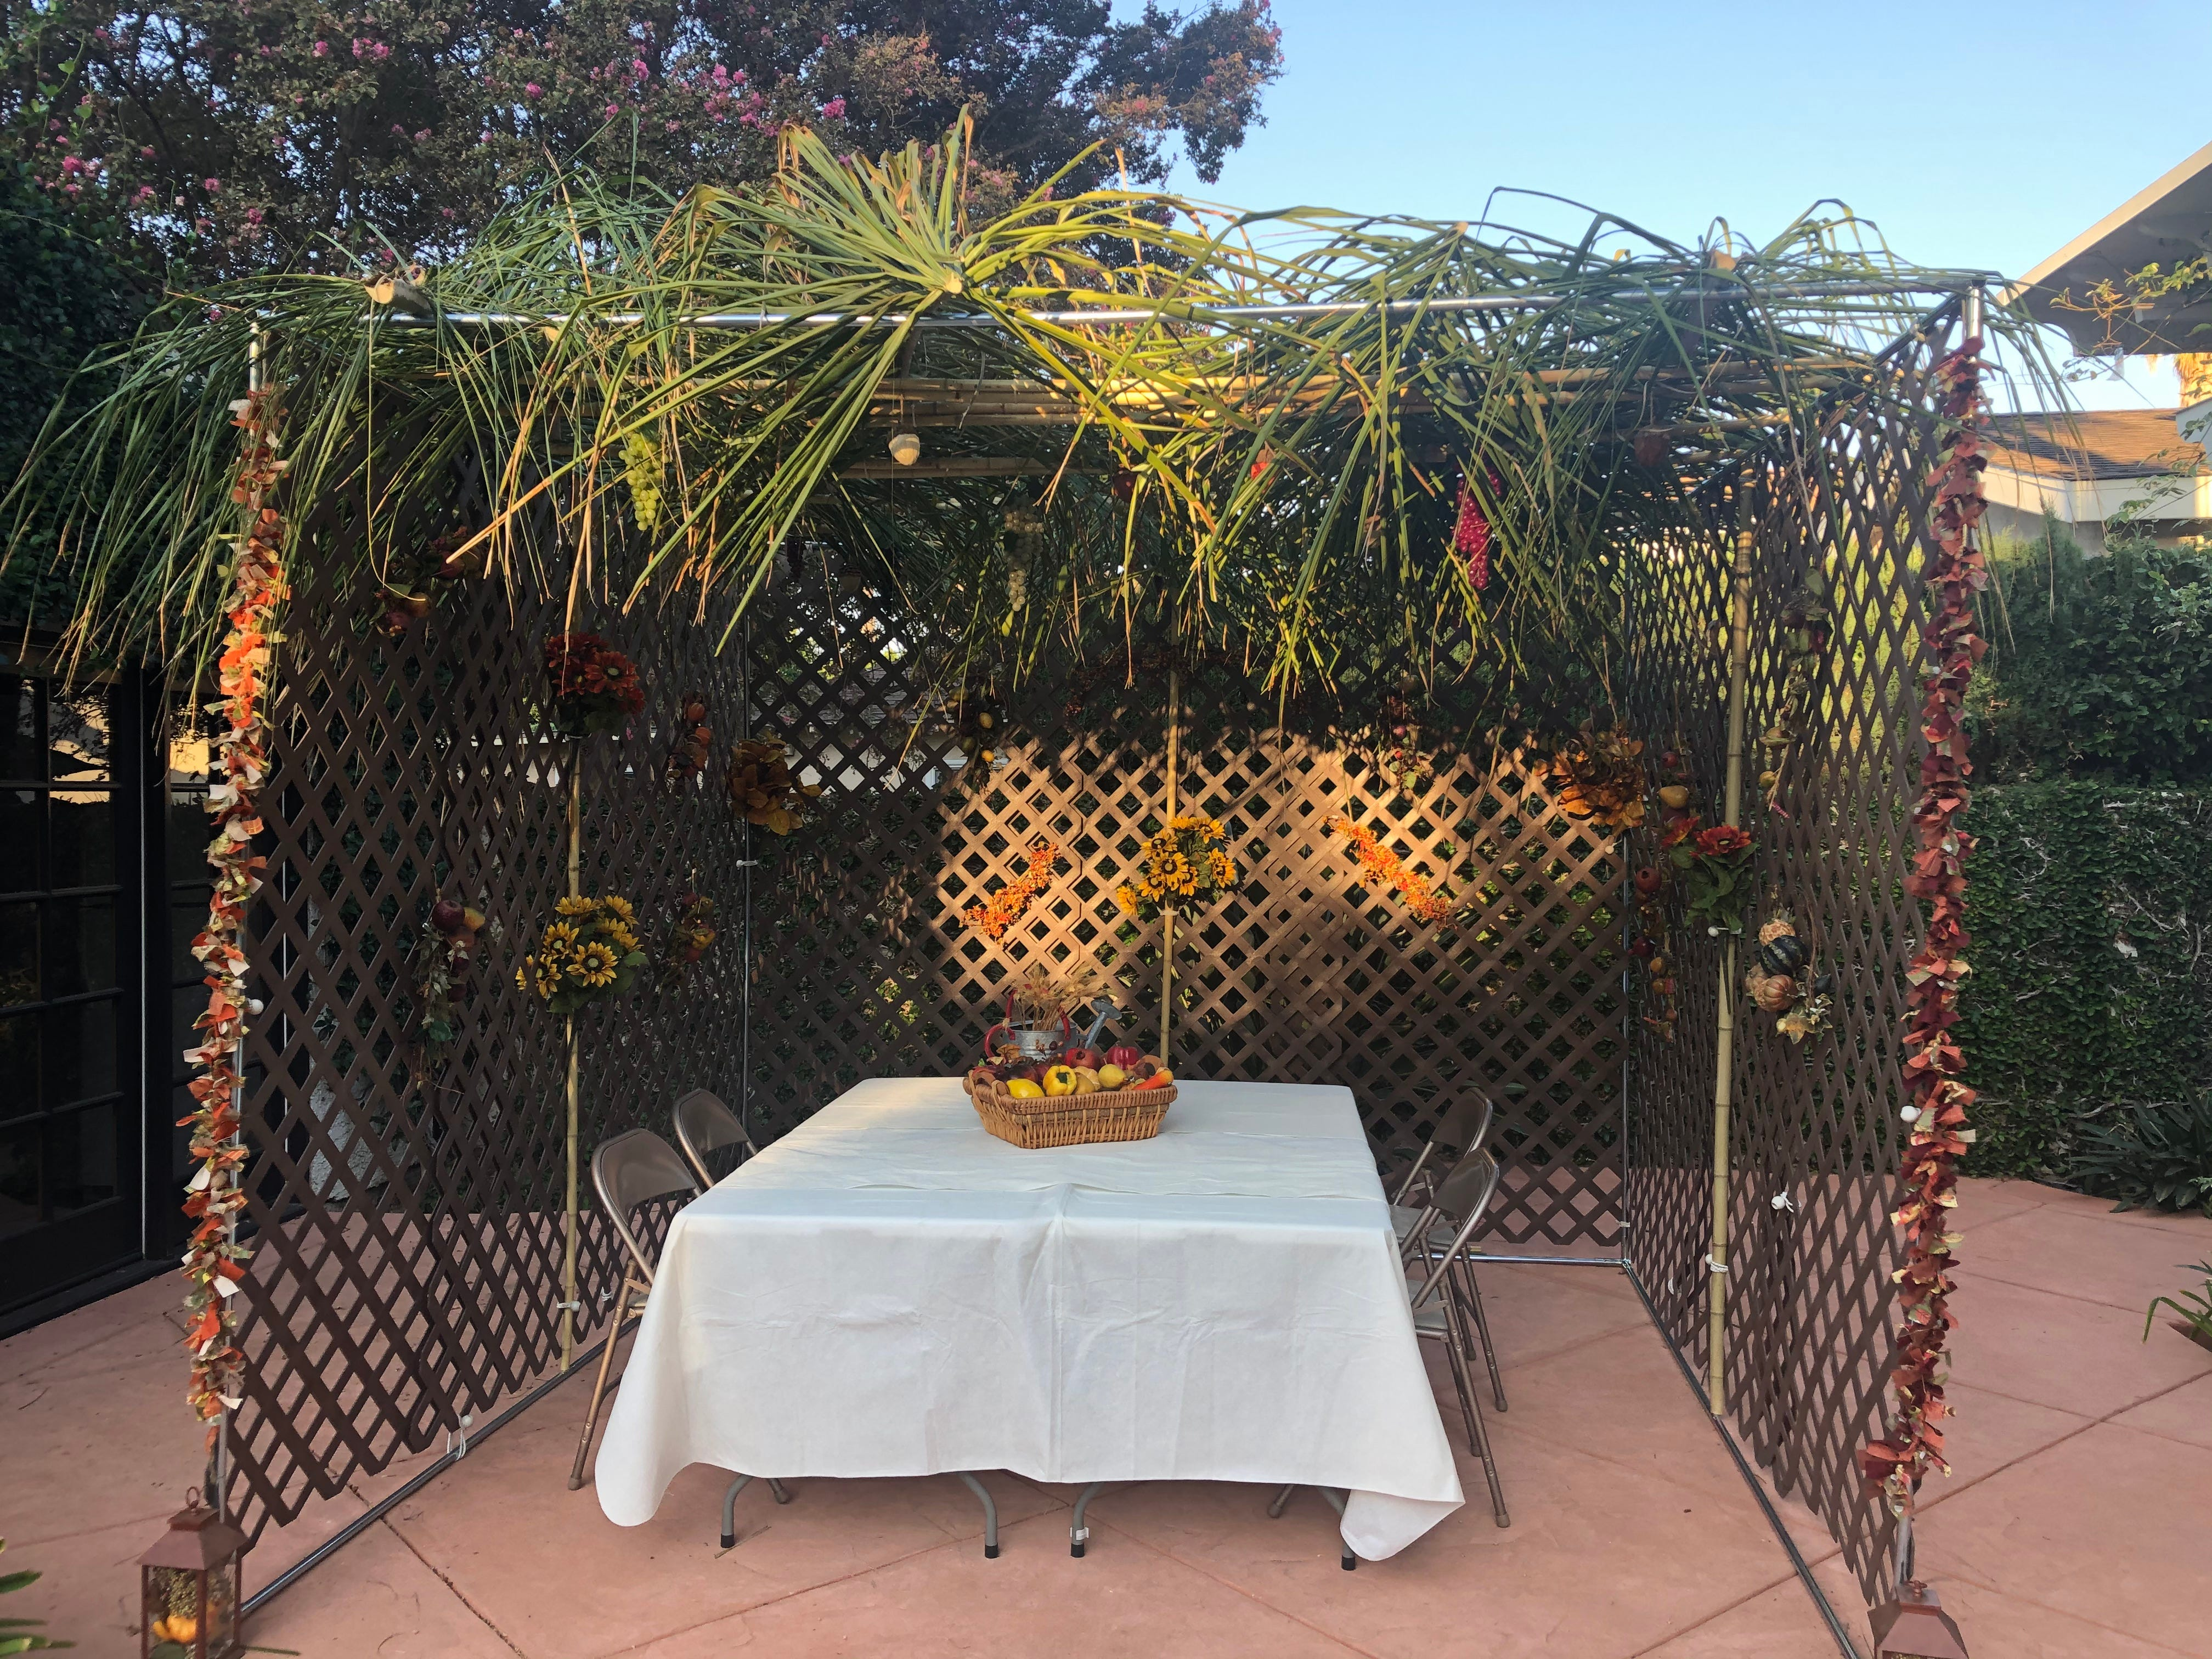 Sukkot: The Jewish holiday celebrated in huts outside is almost pandemic-friendly